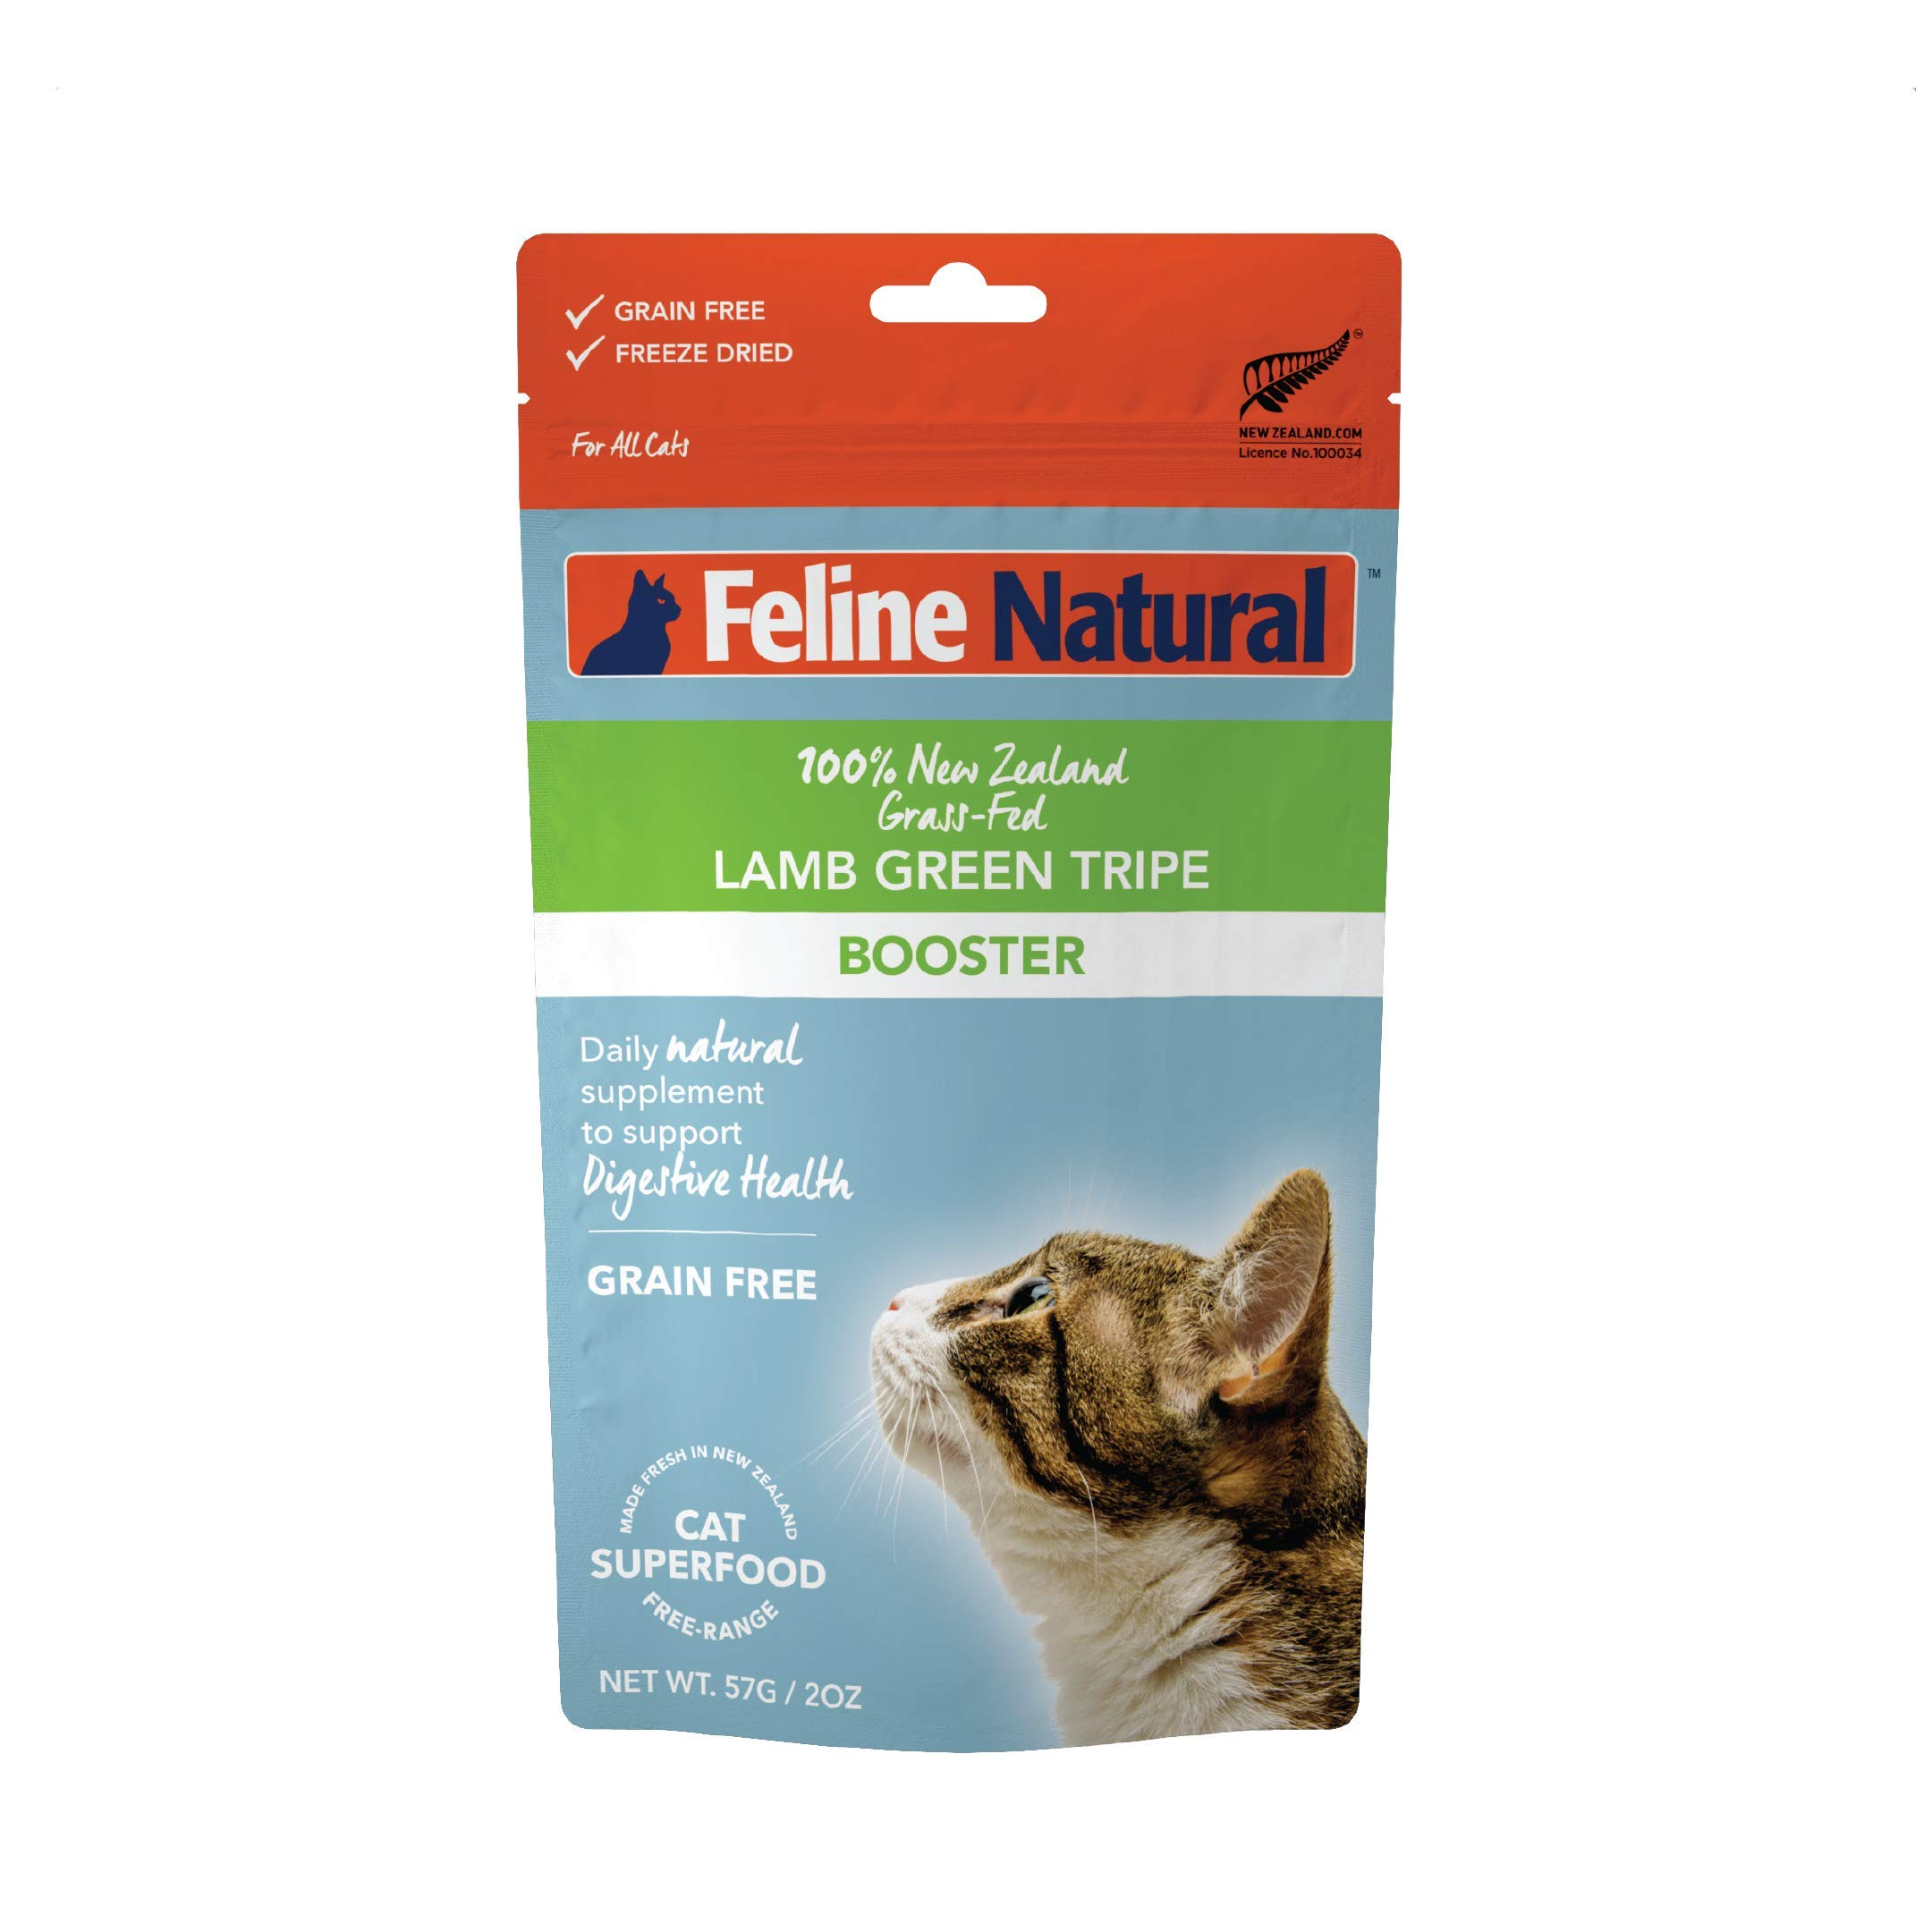 Freeze Dried Cat Food Supplement Booster by Feline Natural - Perfect Grain Free, Healthy, Hypoallergenic Limited Ingredients - Cat Supplement - 100% Green Tripe Nutrition for Cats - 2 oz